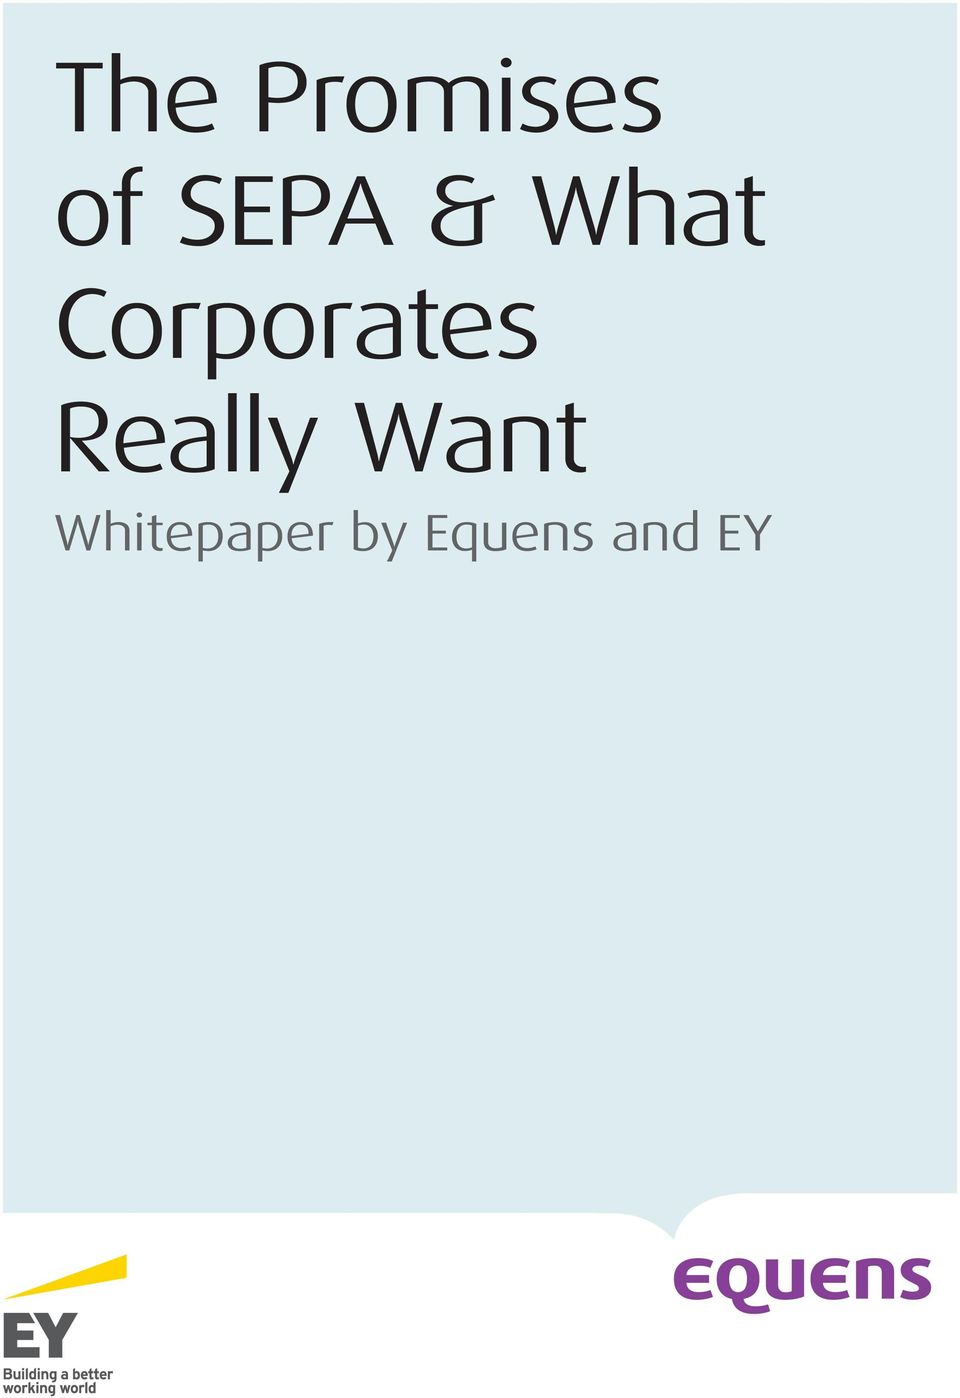 Whitepaper by Equens and EY